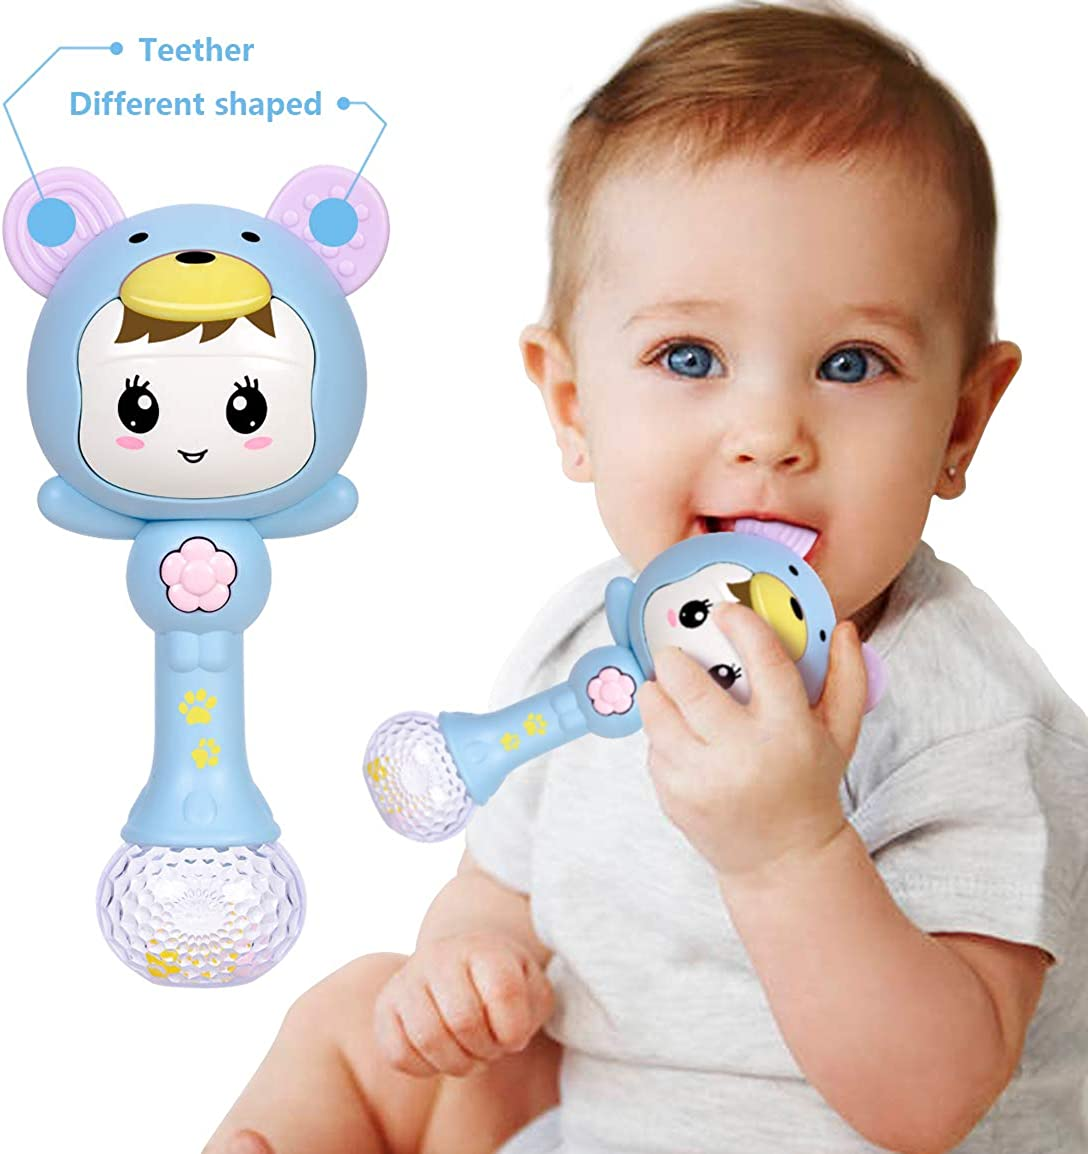 Refasy Children Early Education Musical Rattles Toy for Baby-Hot Gift